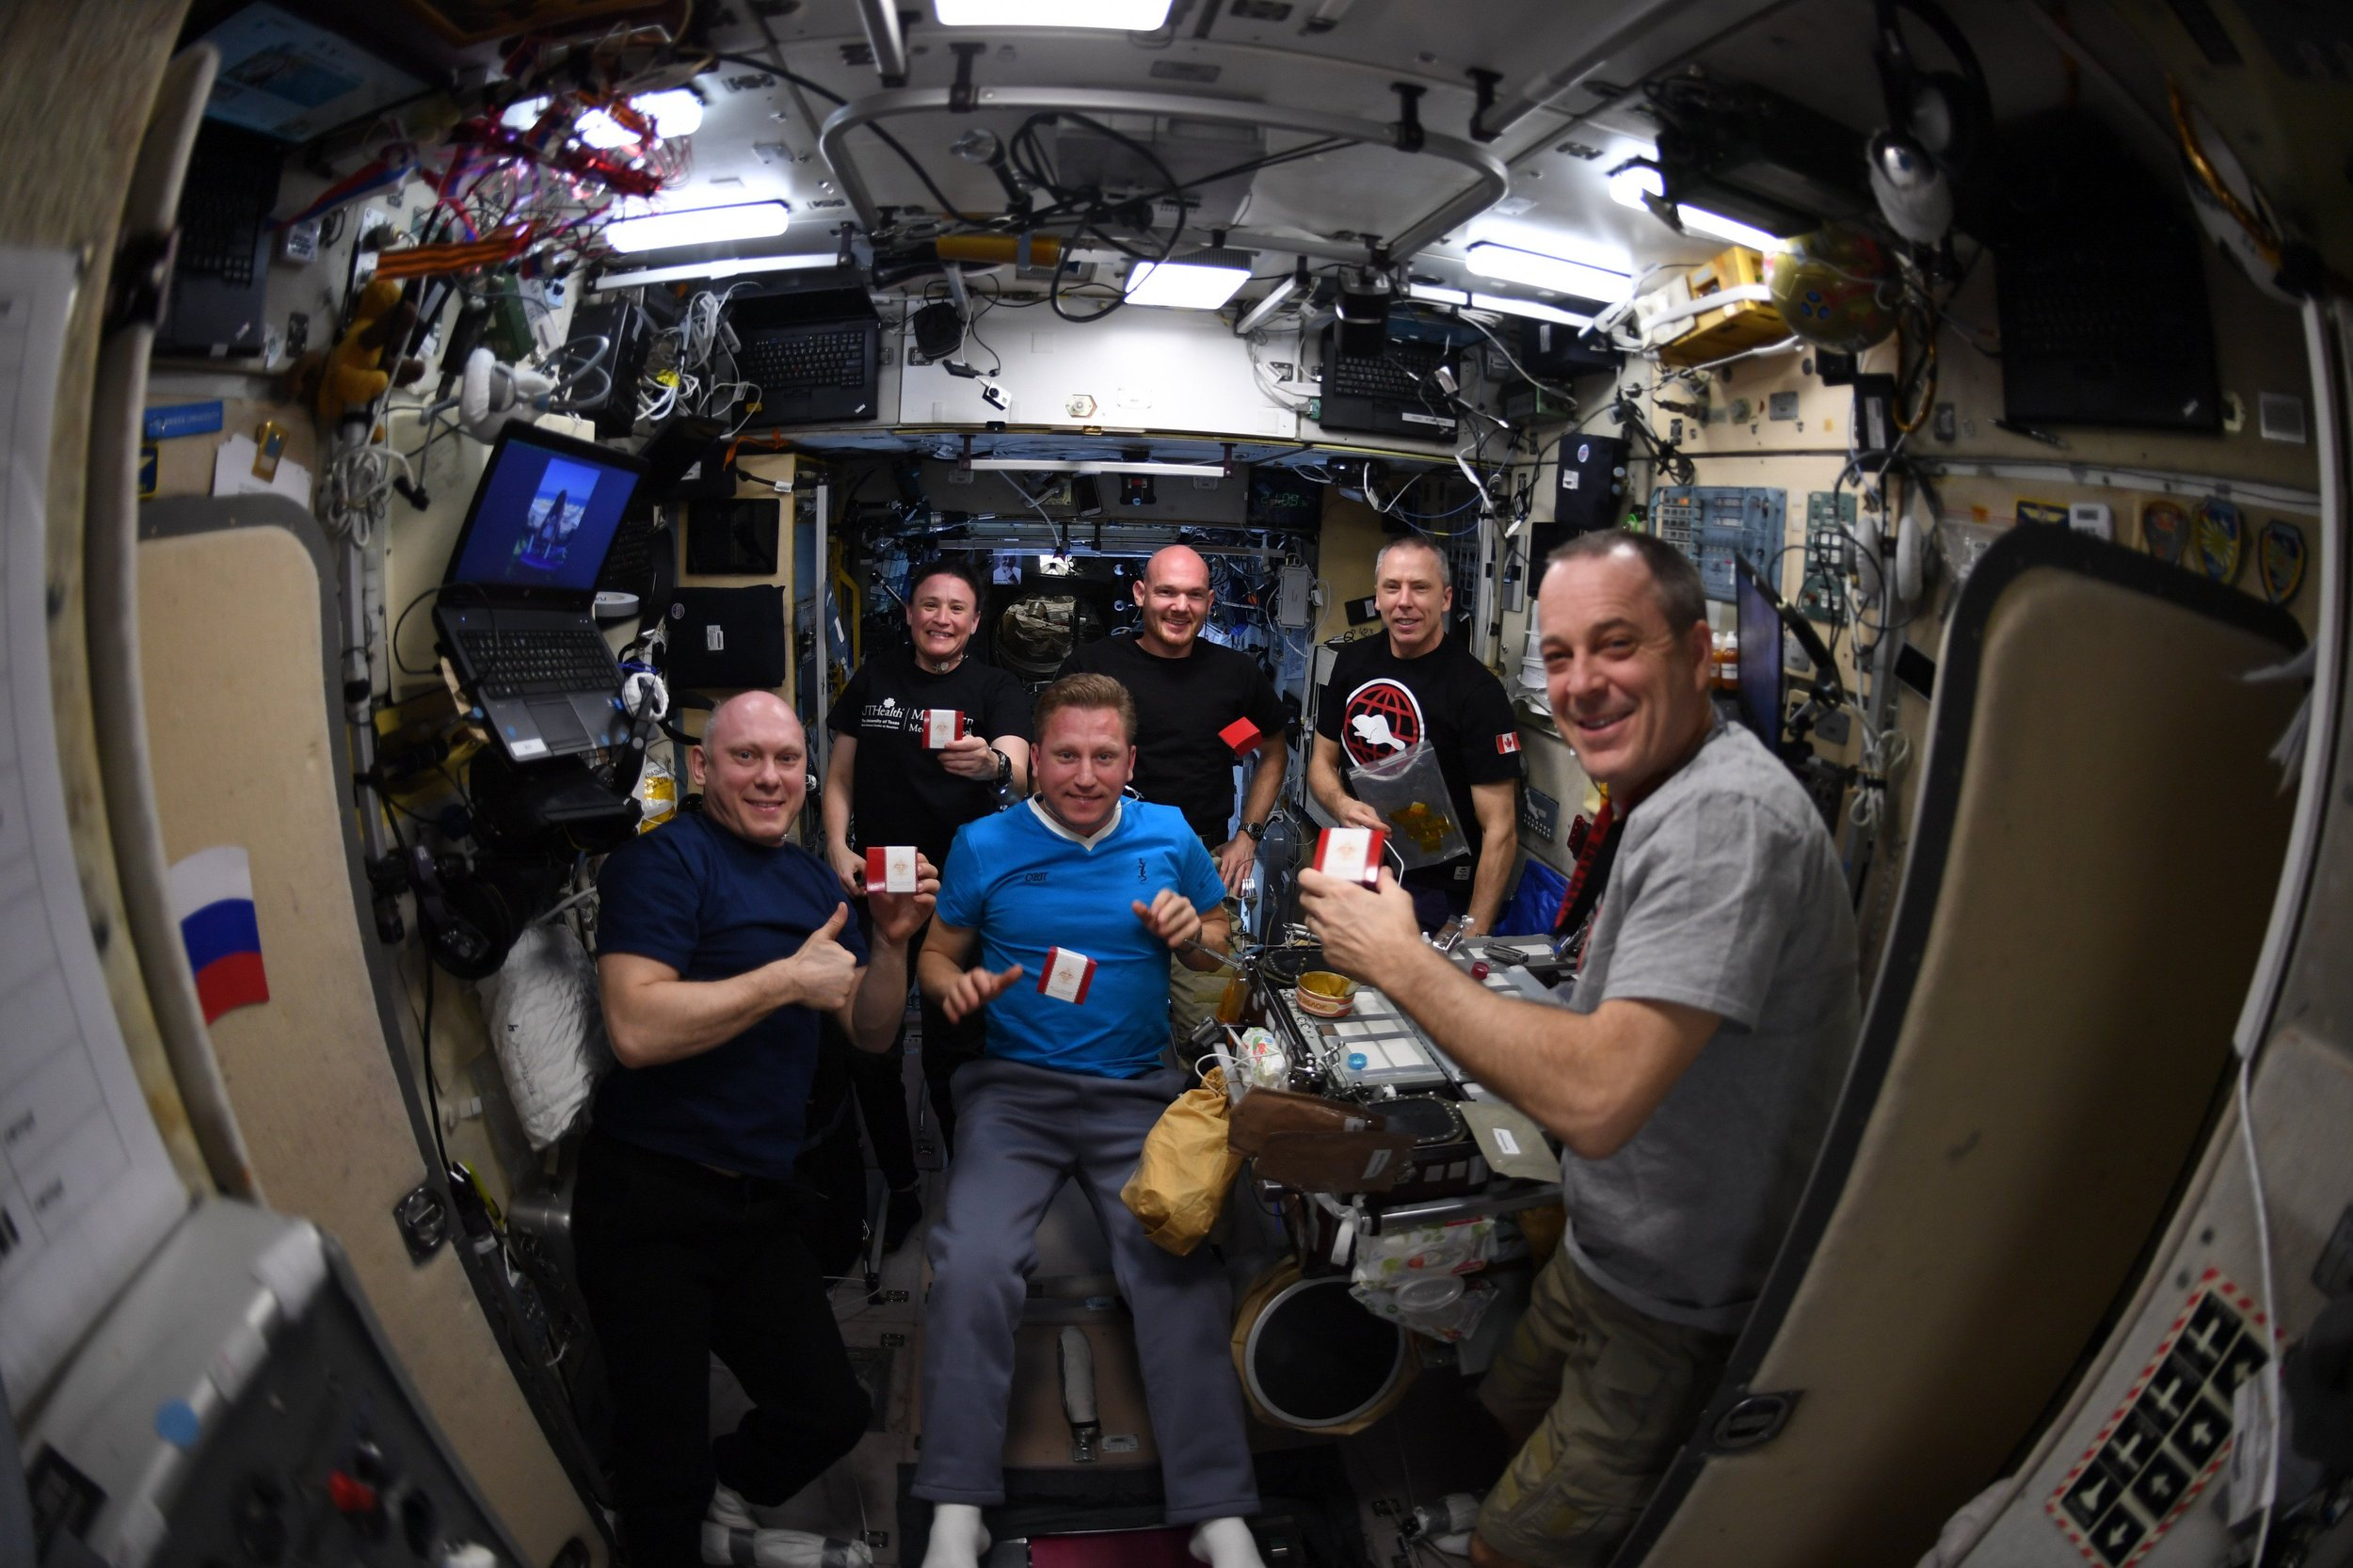 Peace By Chocolate on the Space Station  - Astronauts from around the world. coming together, each with a Peace by Chocolate™ box. Image courtesy of CTV News.